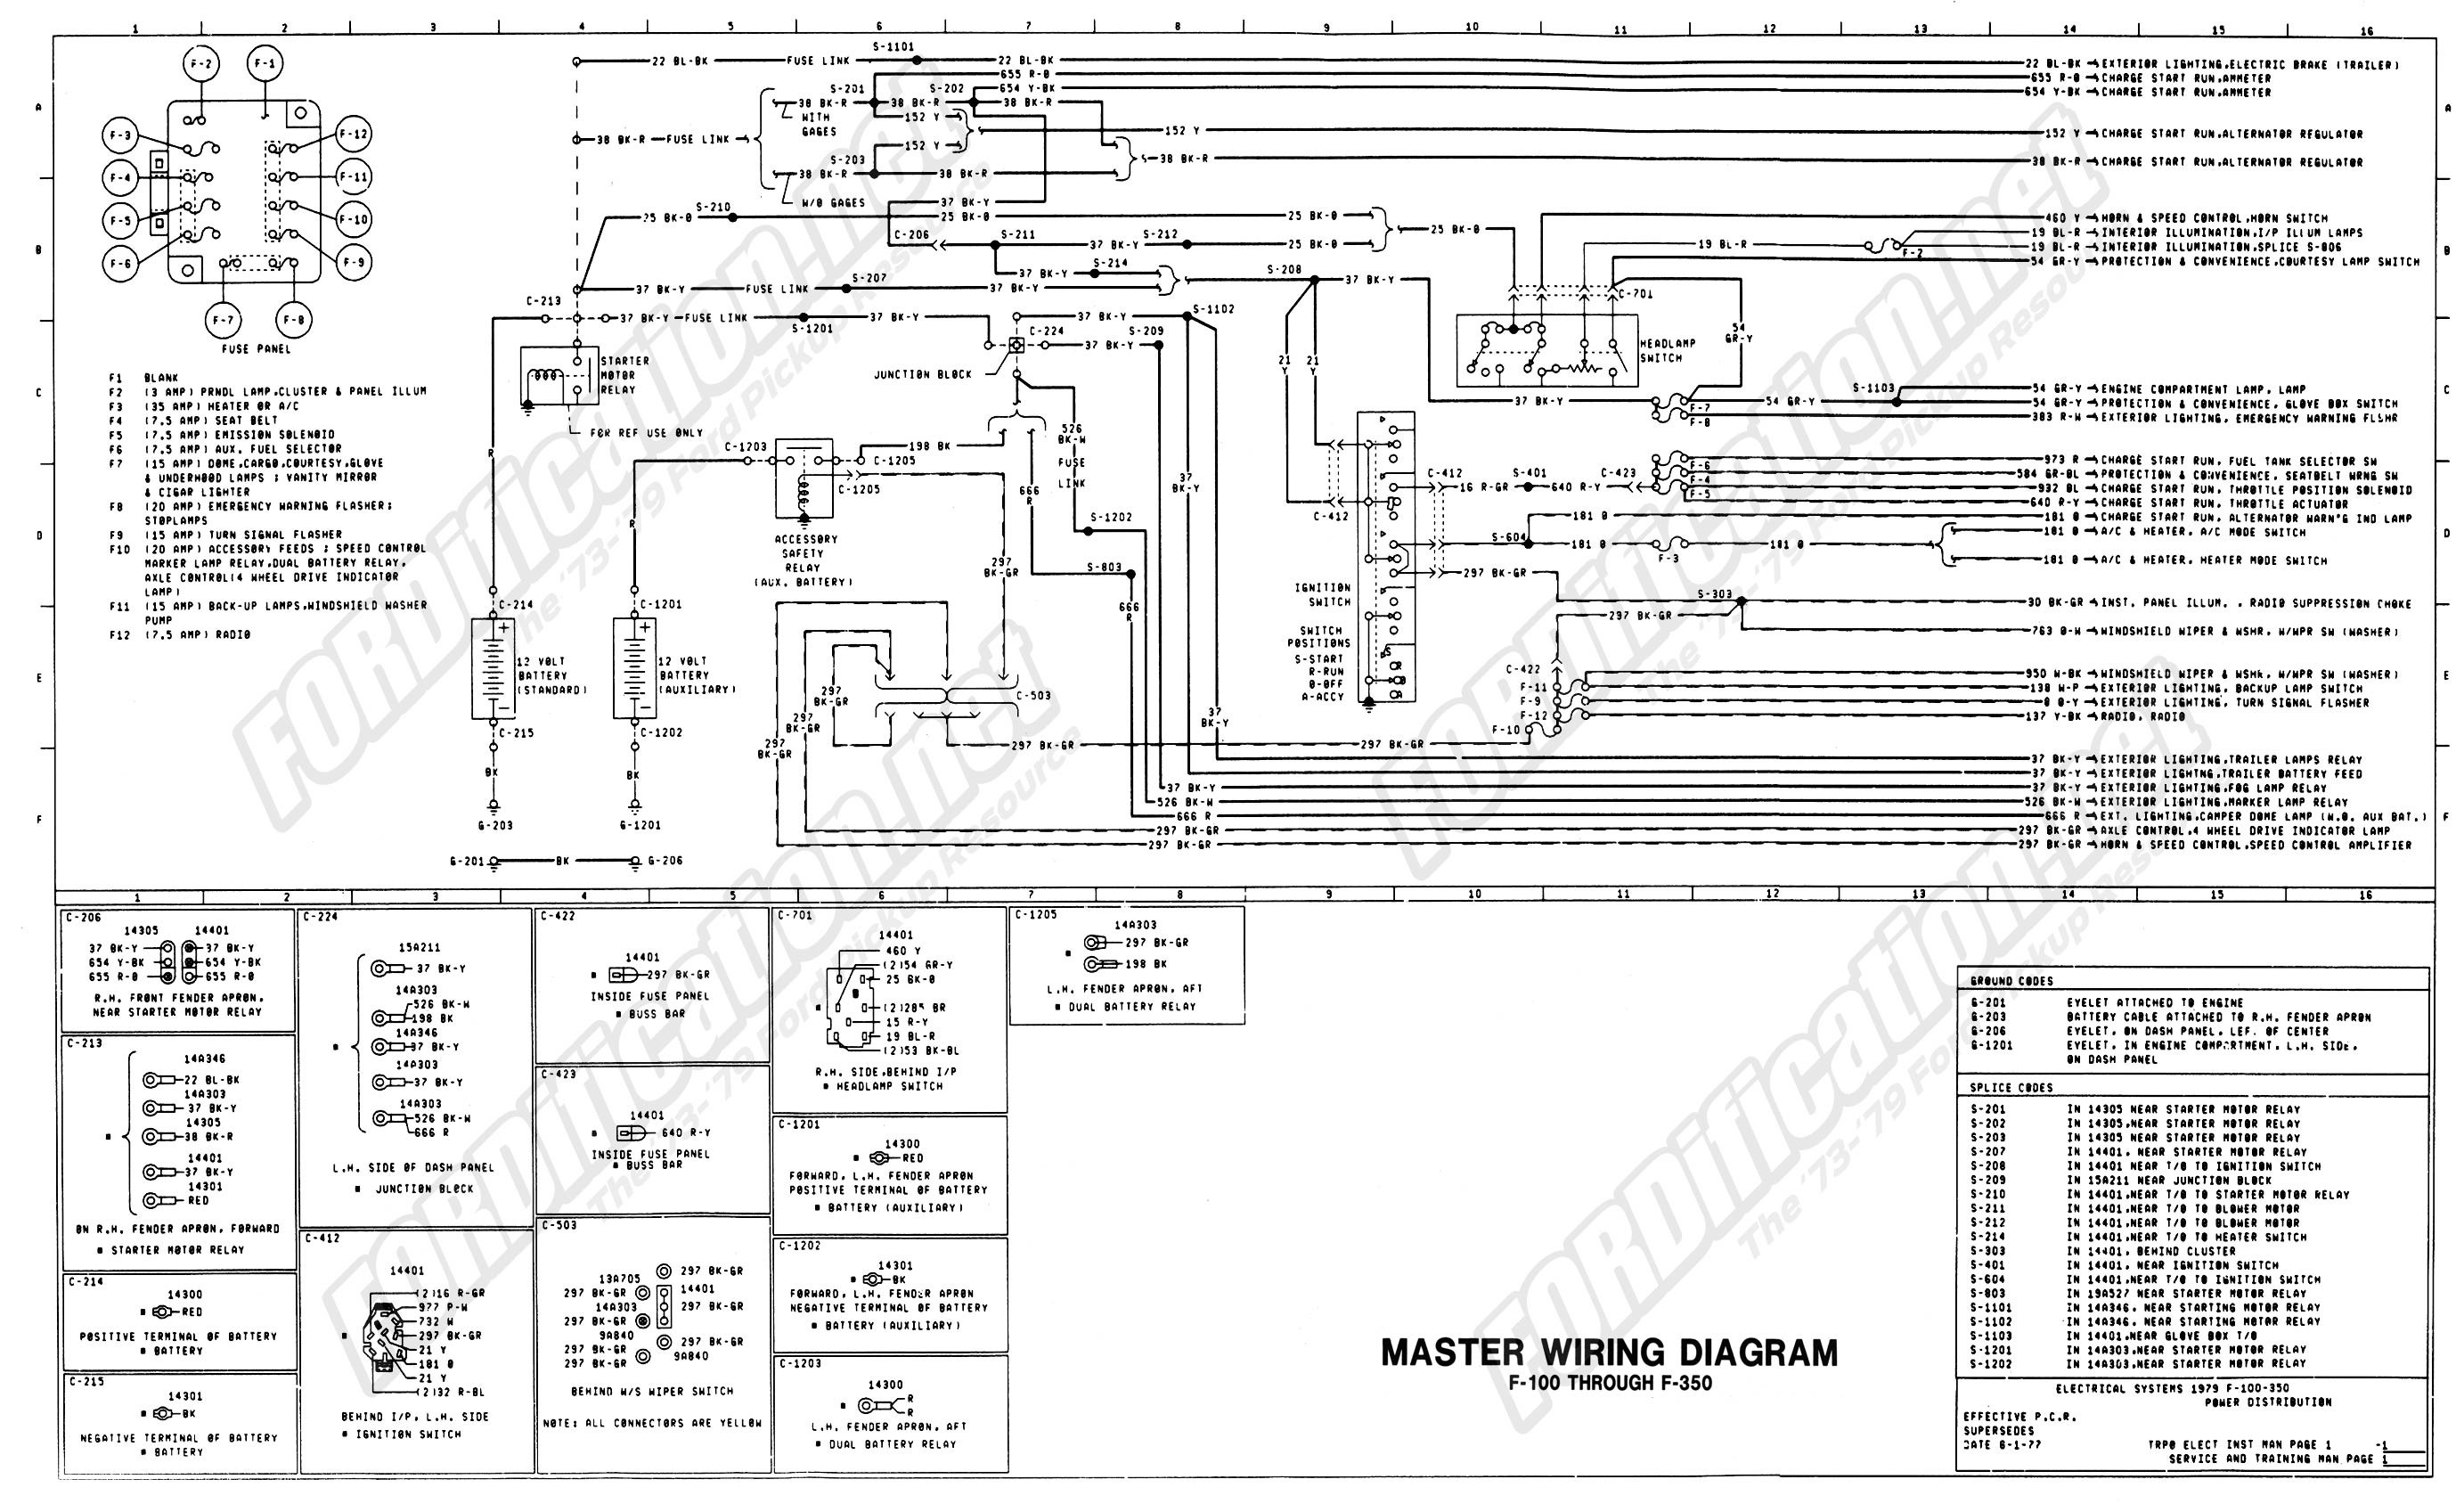 1990 Chevrolet Suburban Blower Motor Wiring Diagram Worksheet And 1999 Chevy Speaker 2000 Silverado Brake Light Switch Rh Detoxicrecenze Com Relay Radio